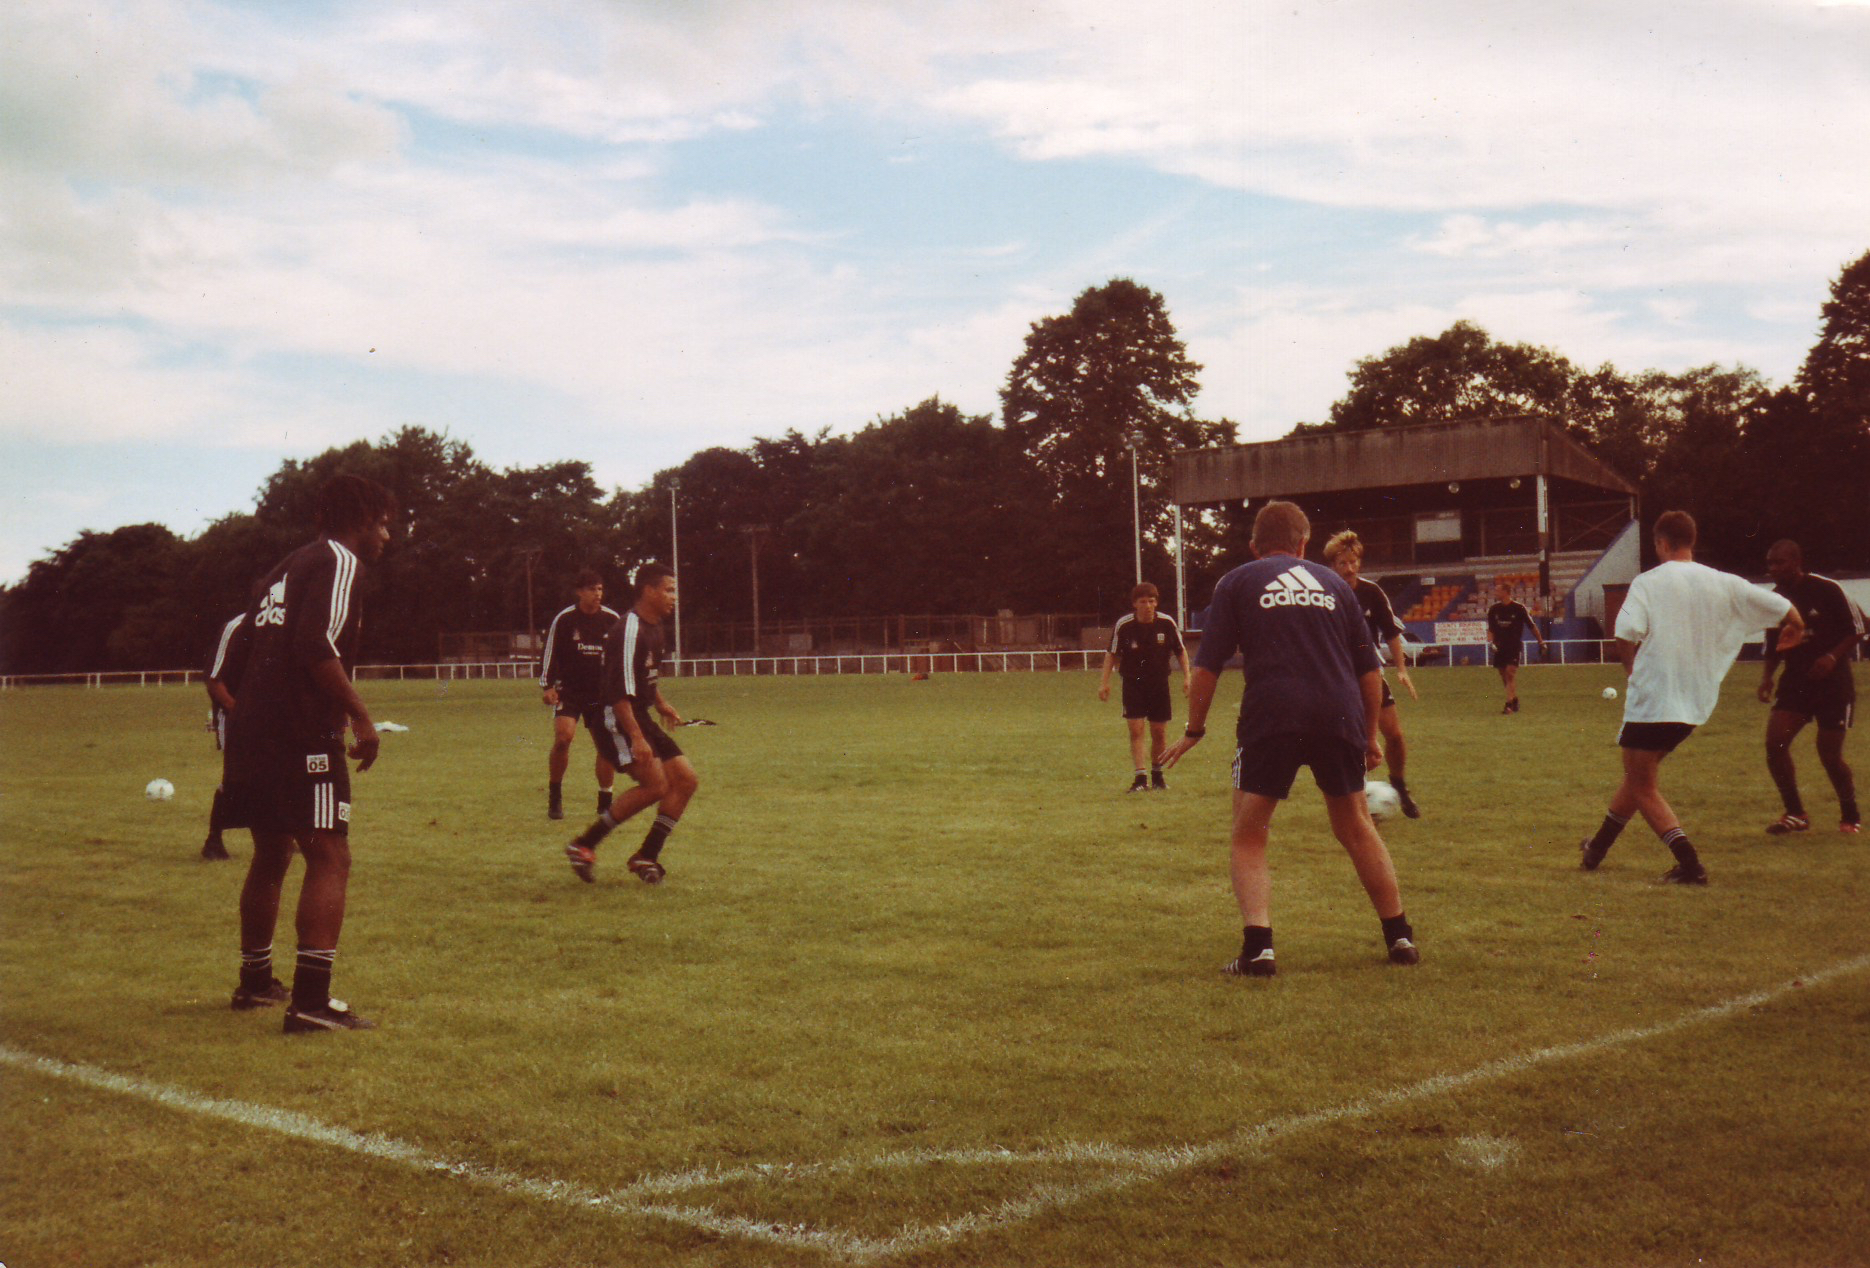 Fulham FC training at Park Road during the 1998-99 season.